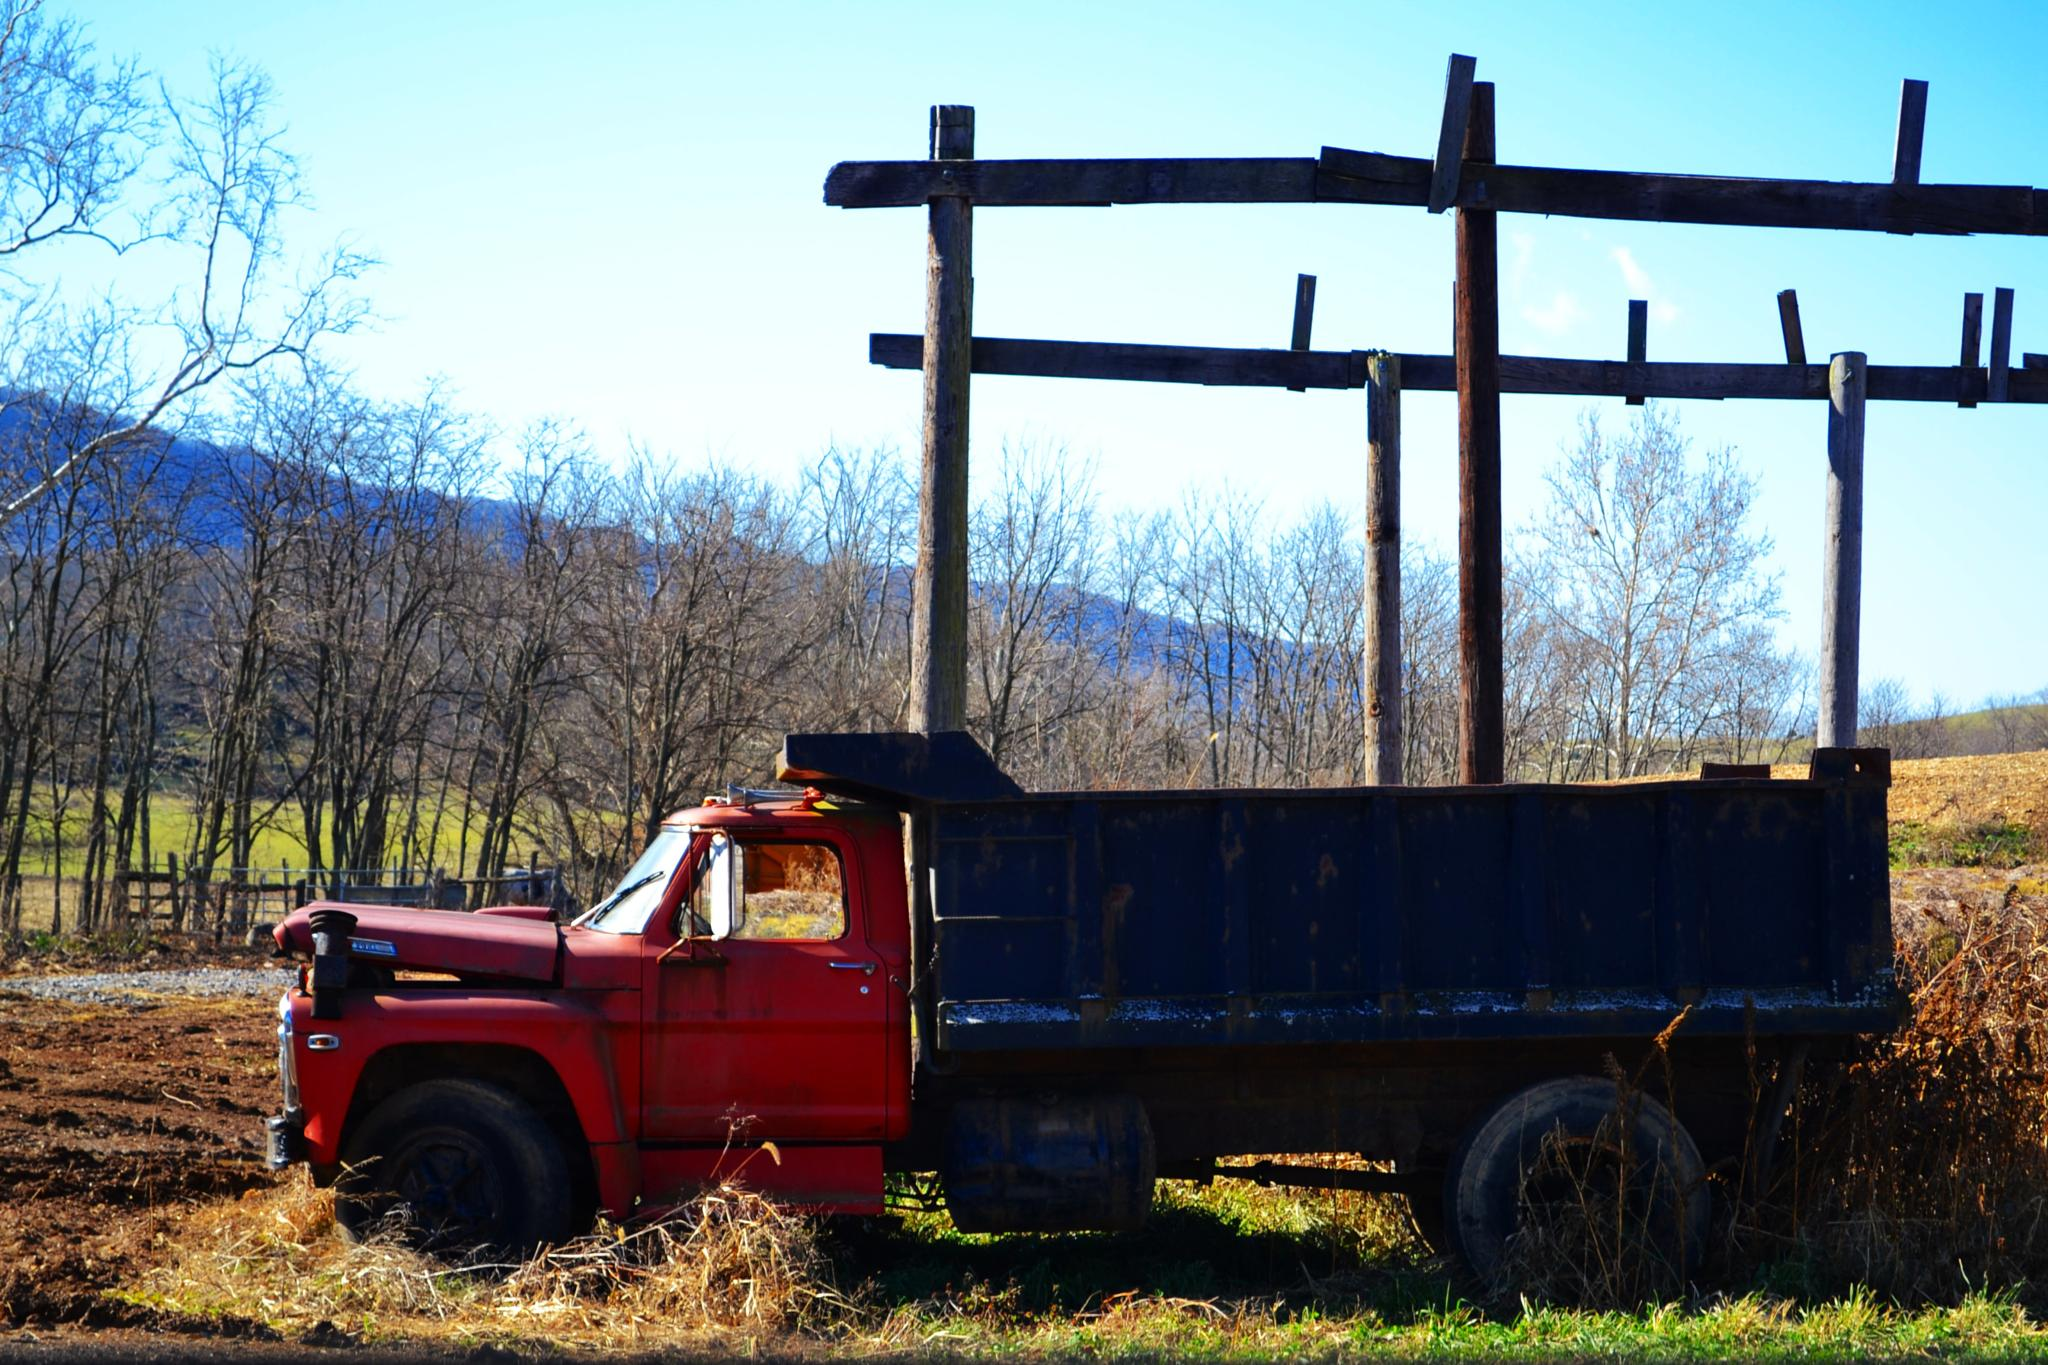 Old Farm Truck by lindandarrell